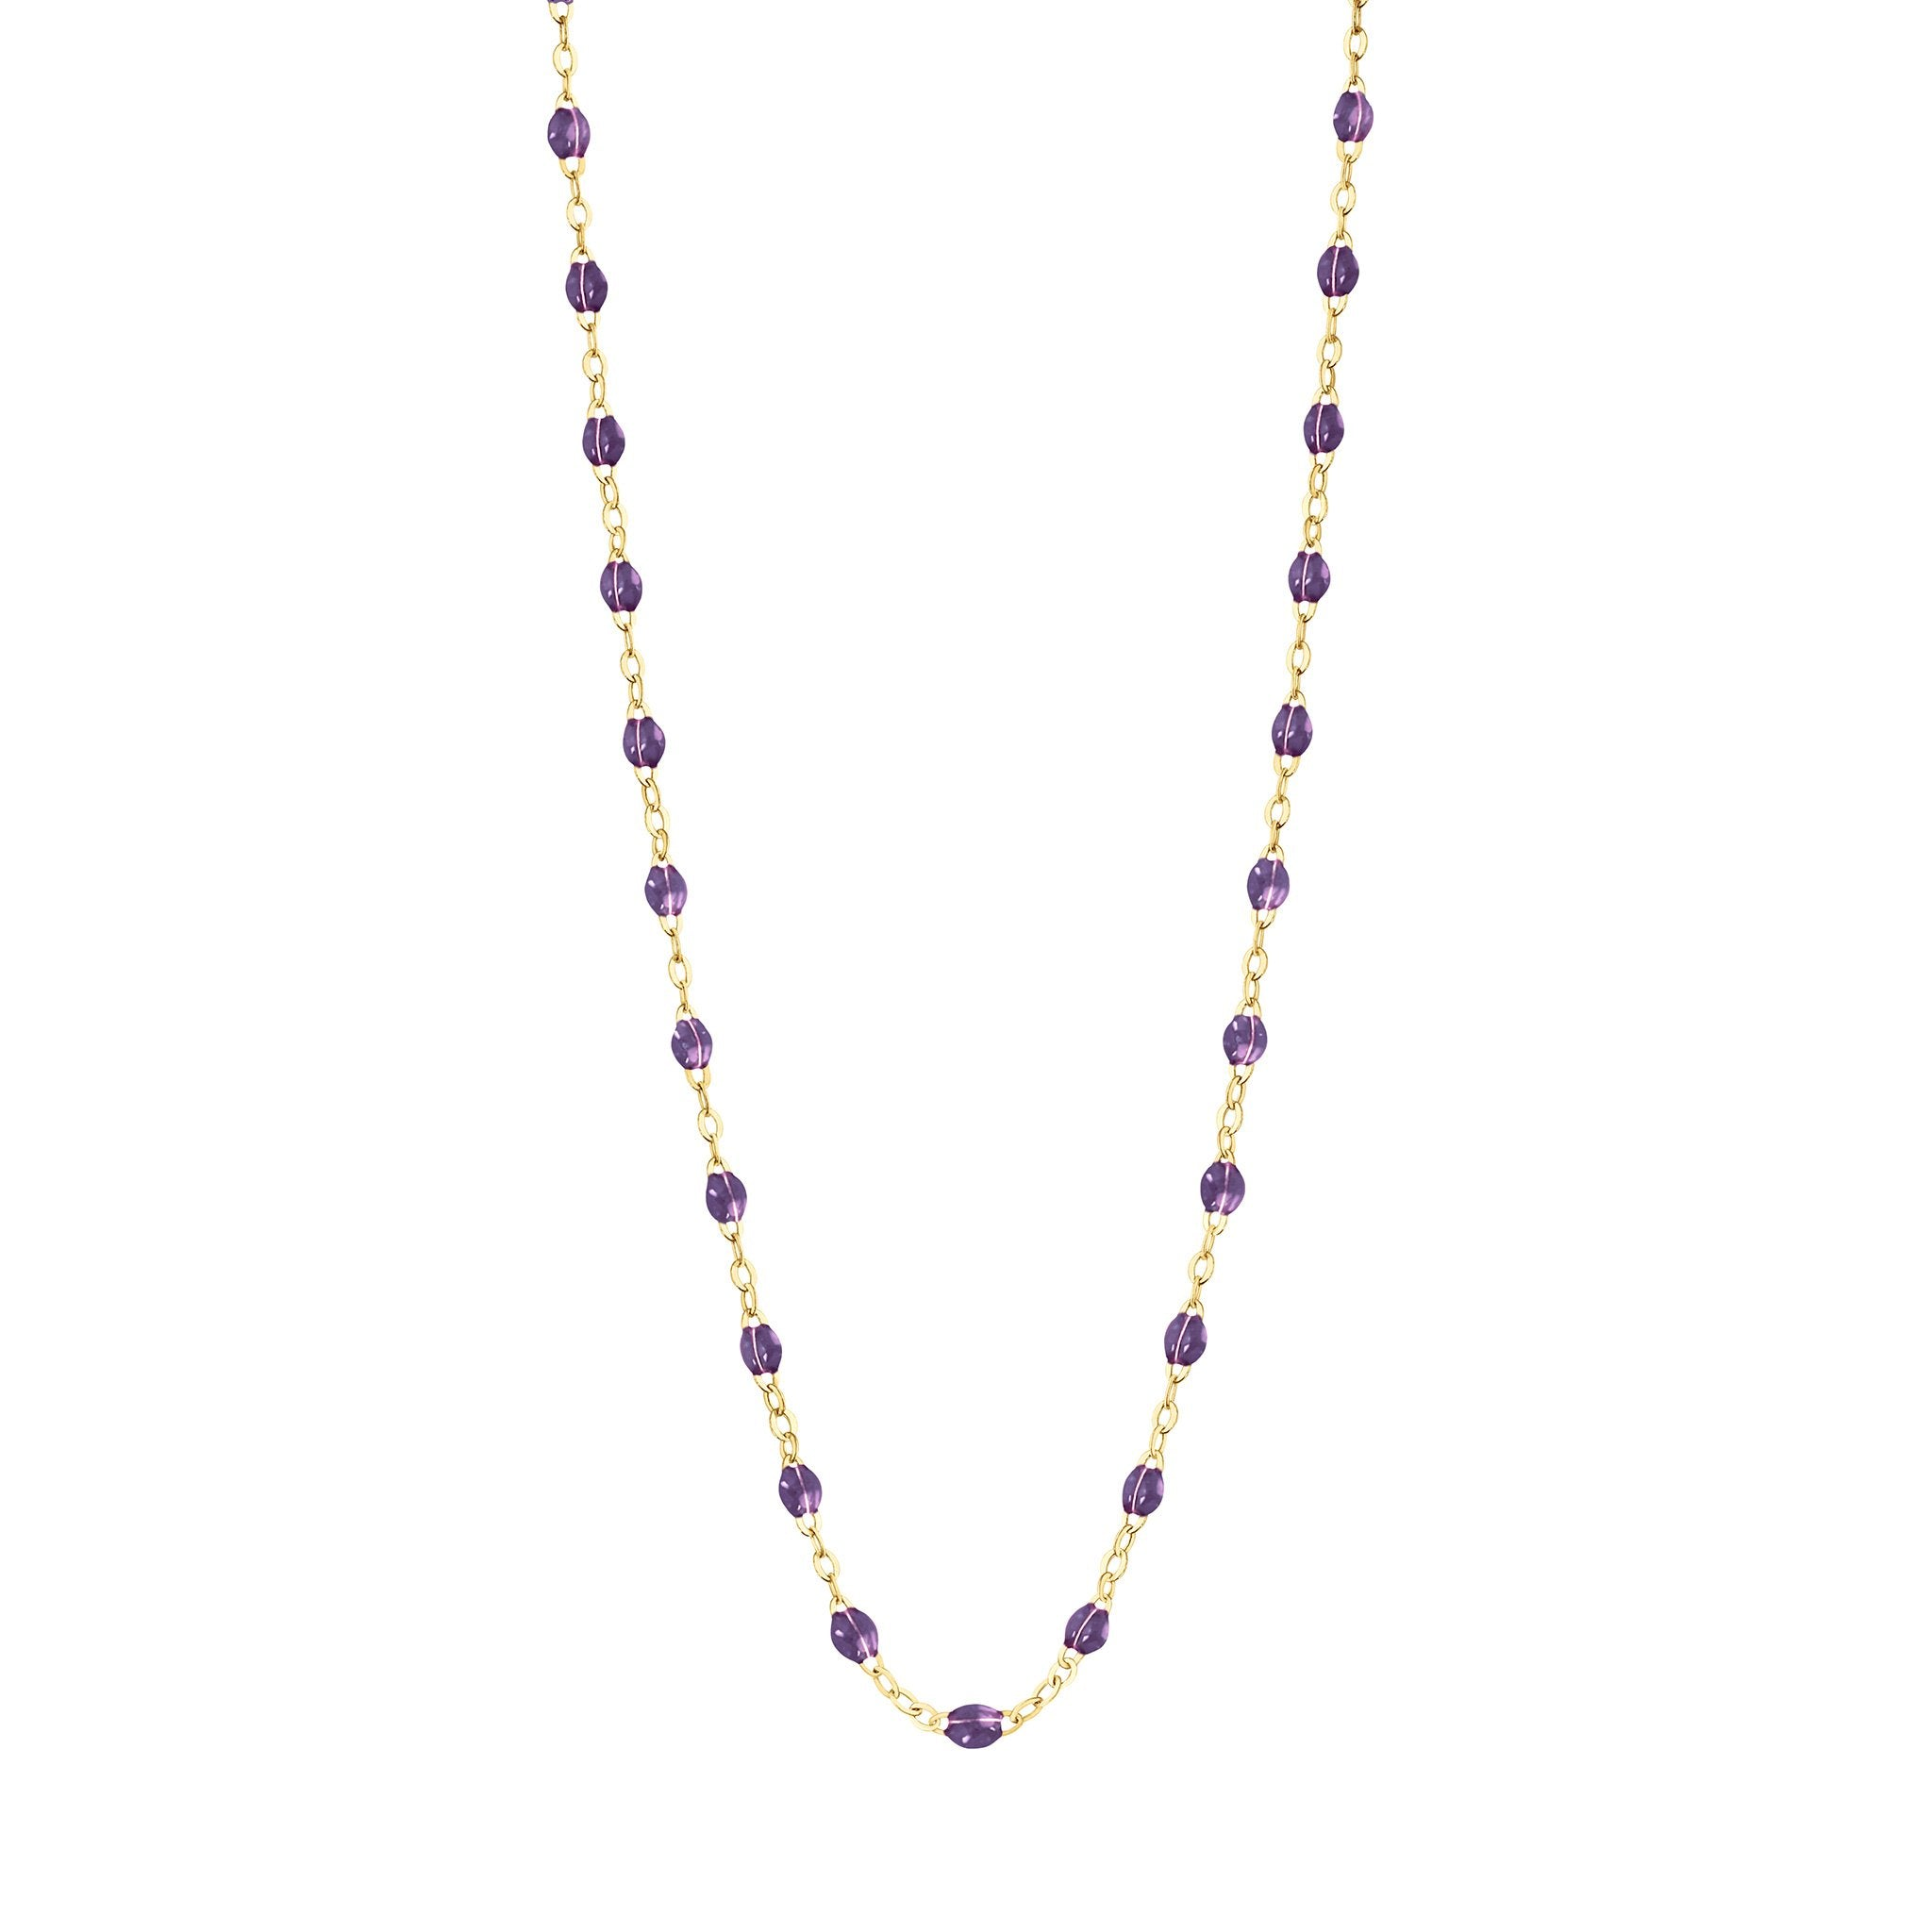 Gigi Clozeau - Classic Gigi Violet necklace, Yellow Gold, 17.7""